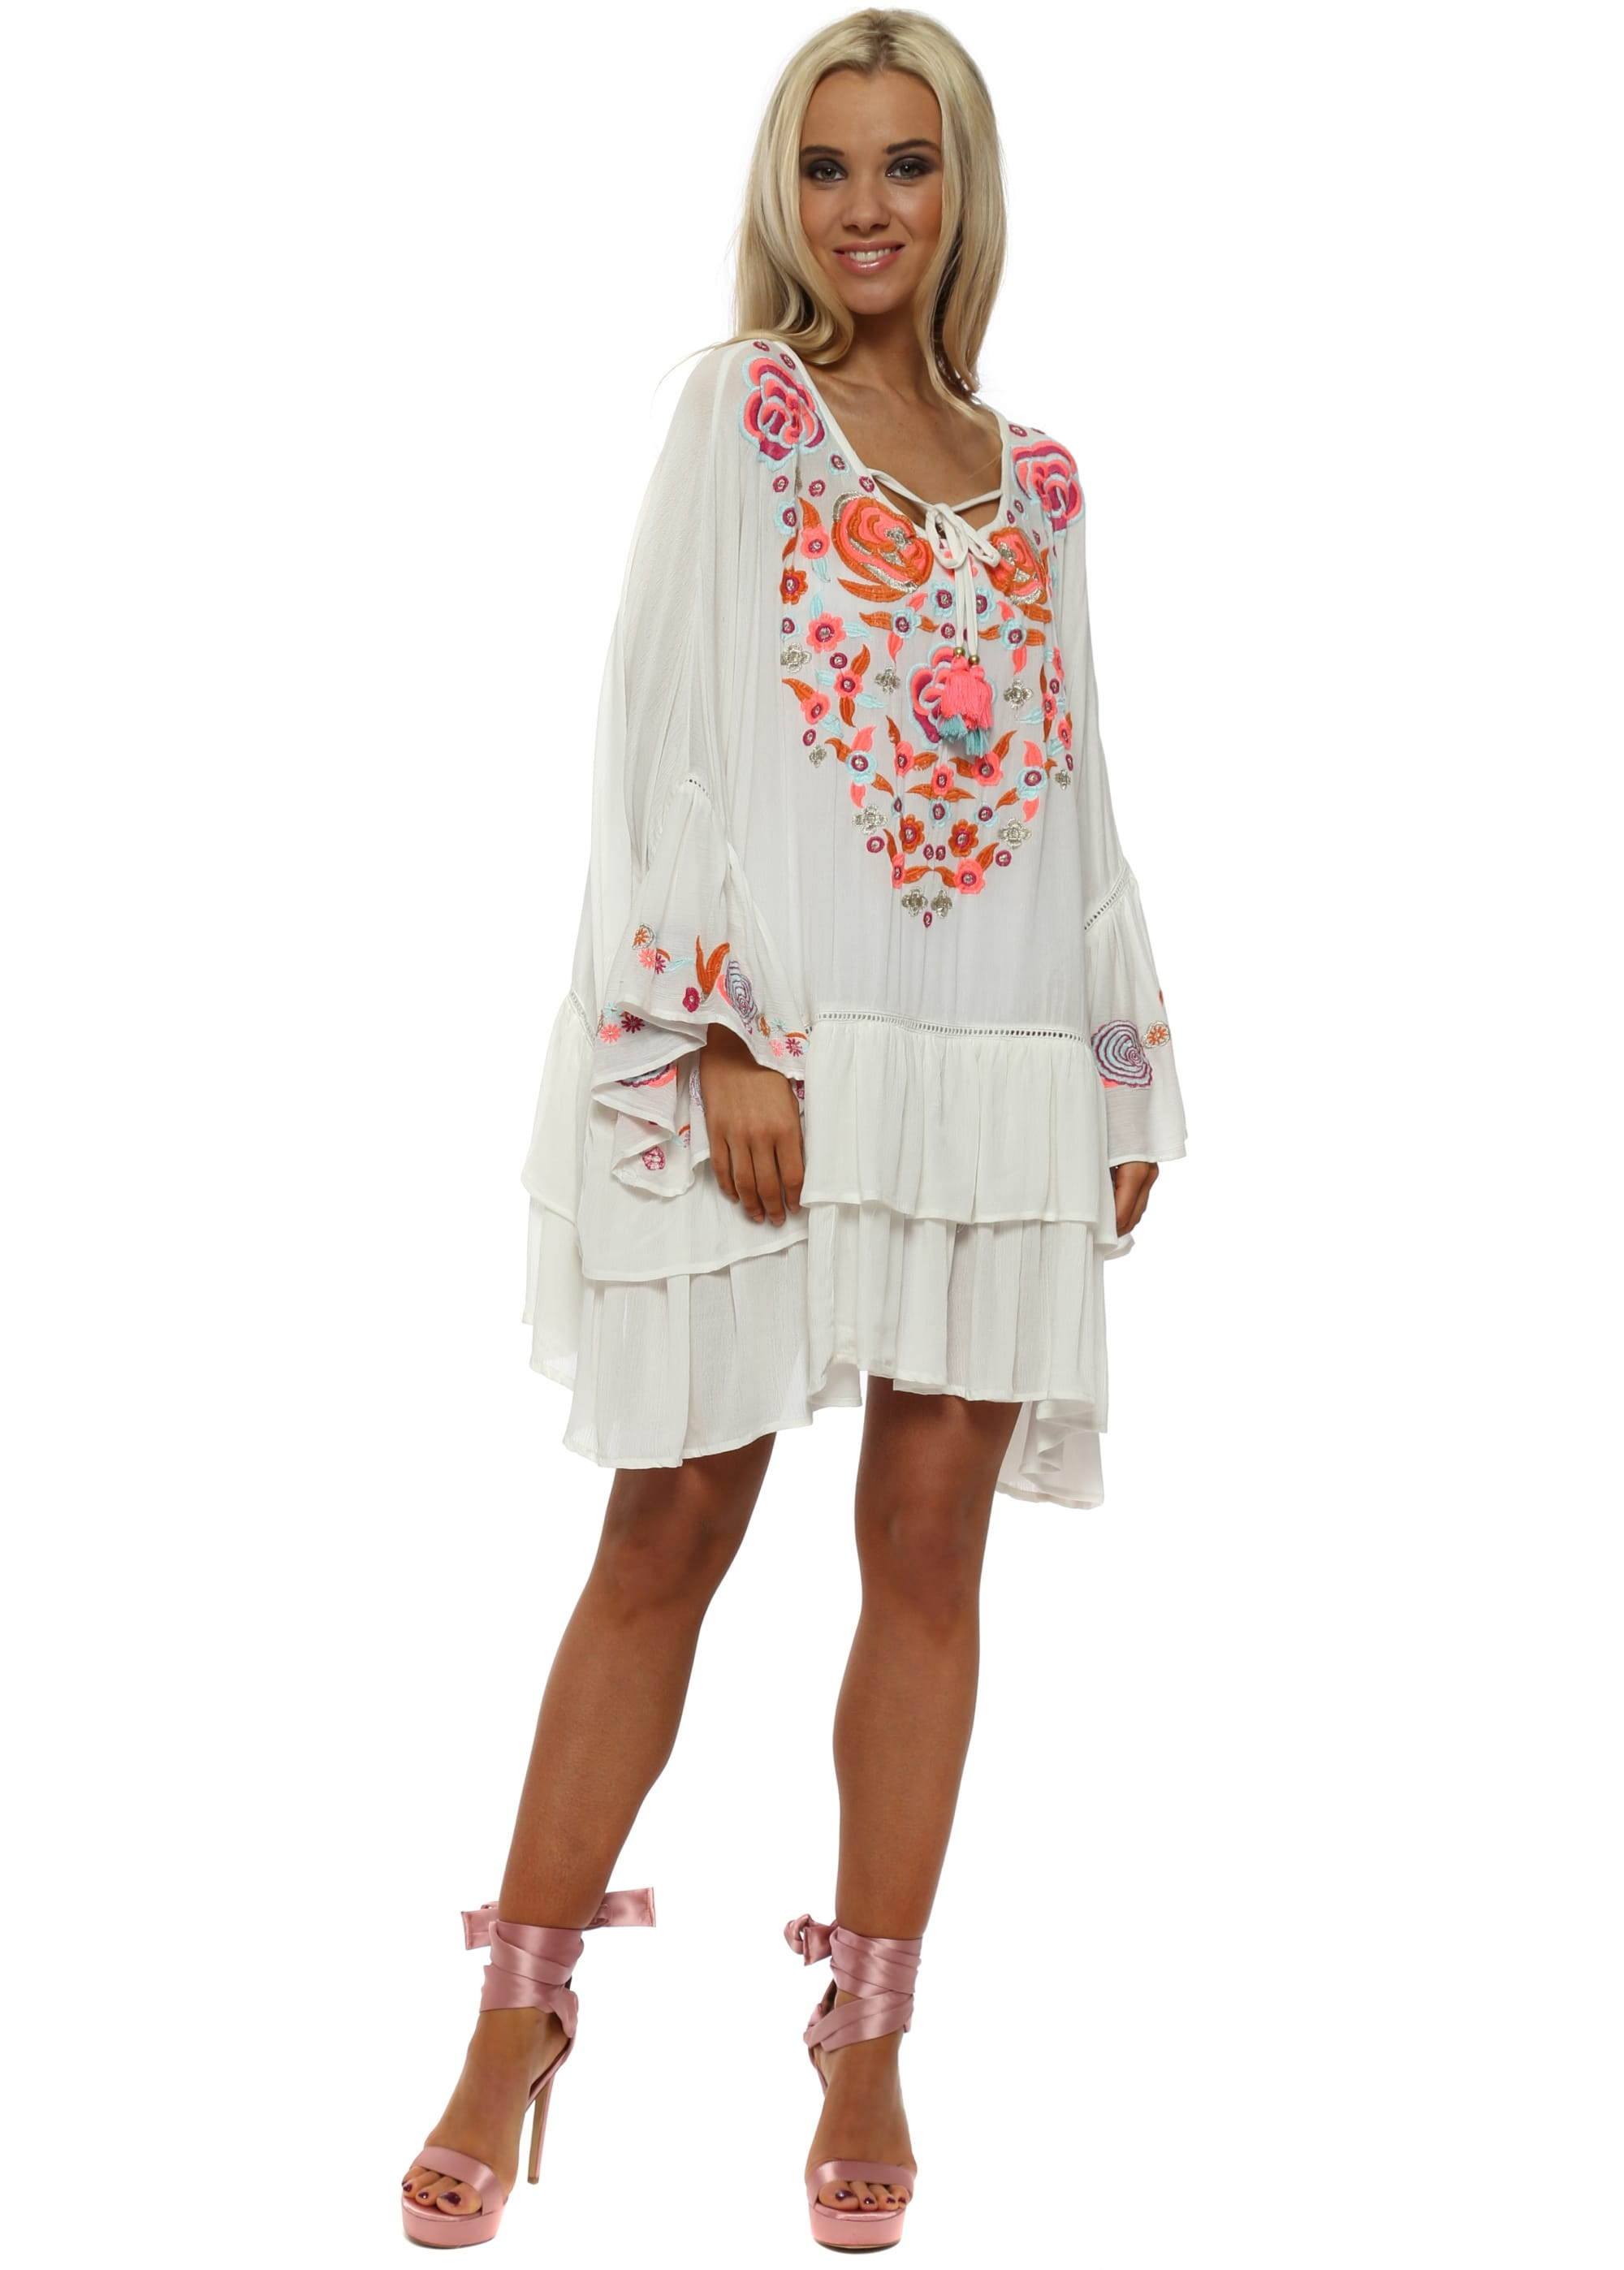 a4ff90cf6e Rustik White Floral Embroidered Beach Dress